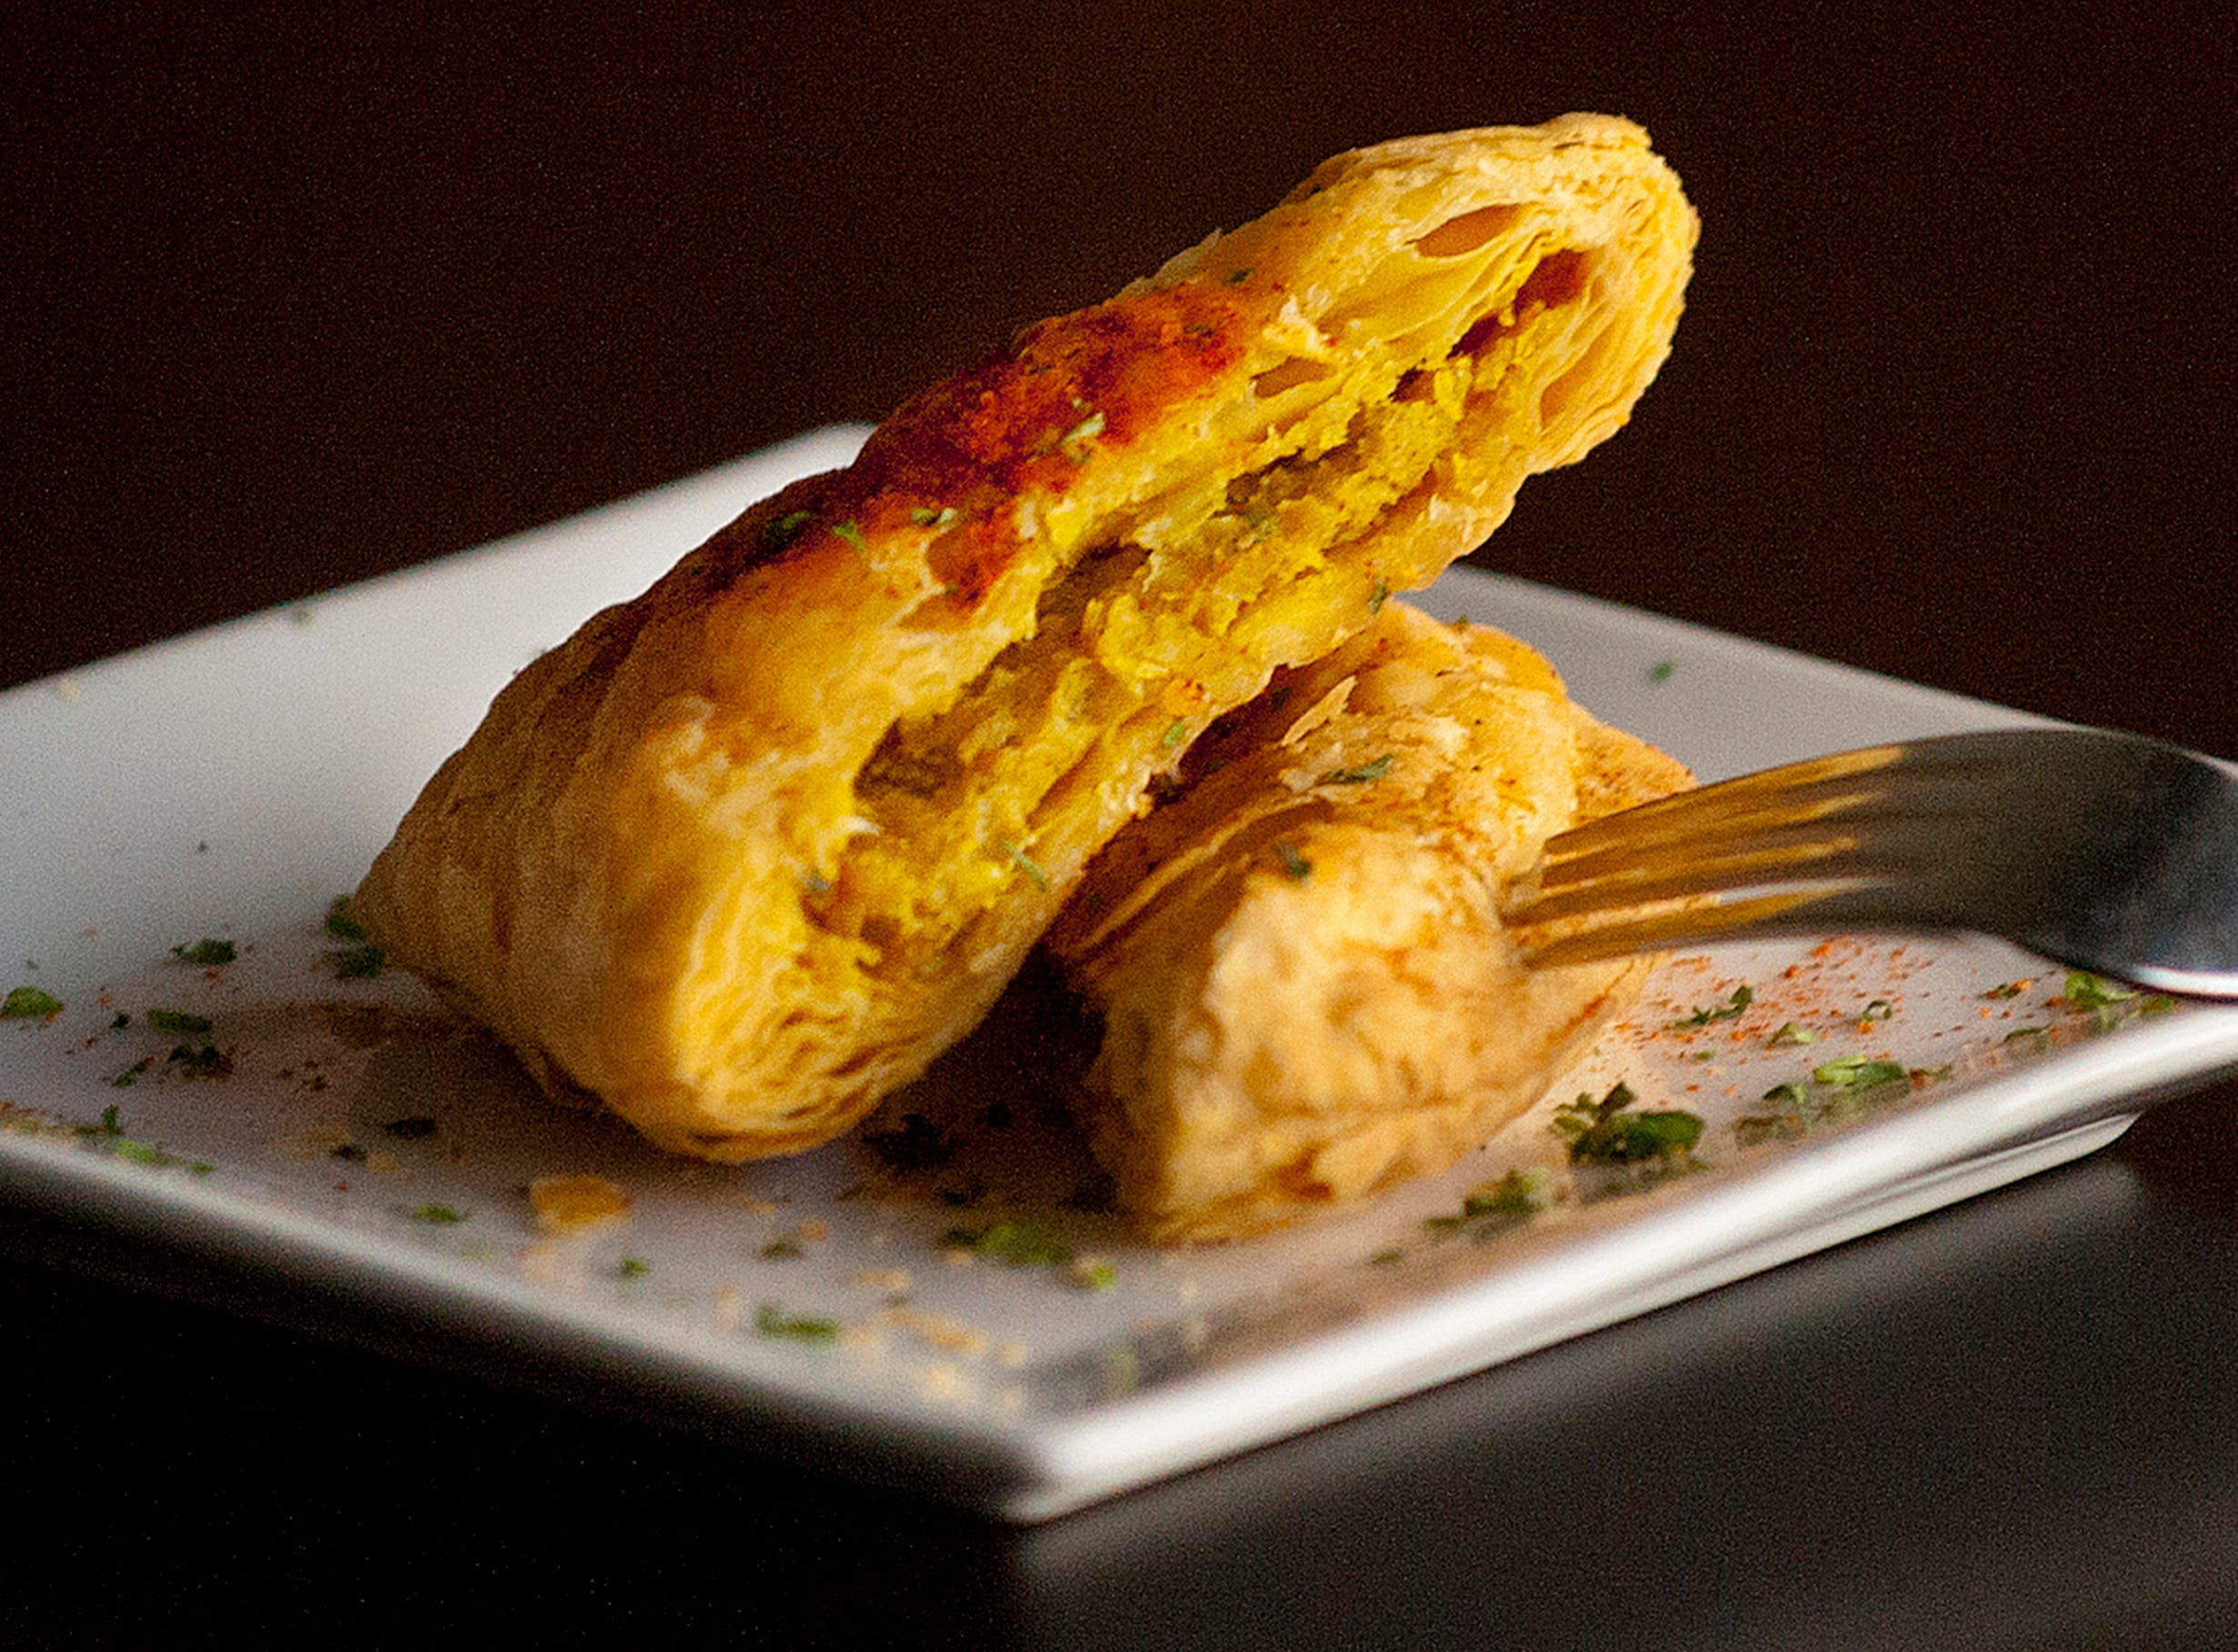 The Flavour Restaurant's Jamaican Pattie is a puff pastry filled with chicken and Caribbean curry spice filling.November 08, 2018